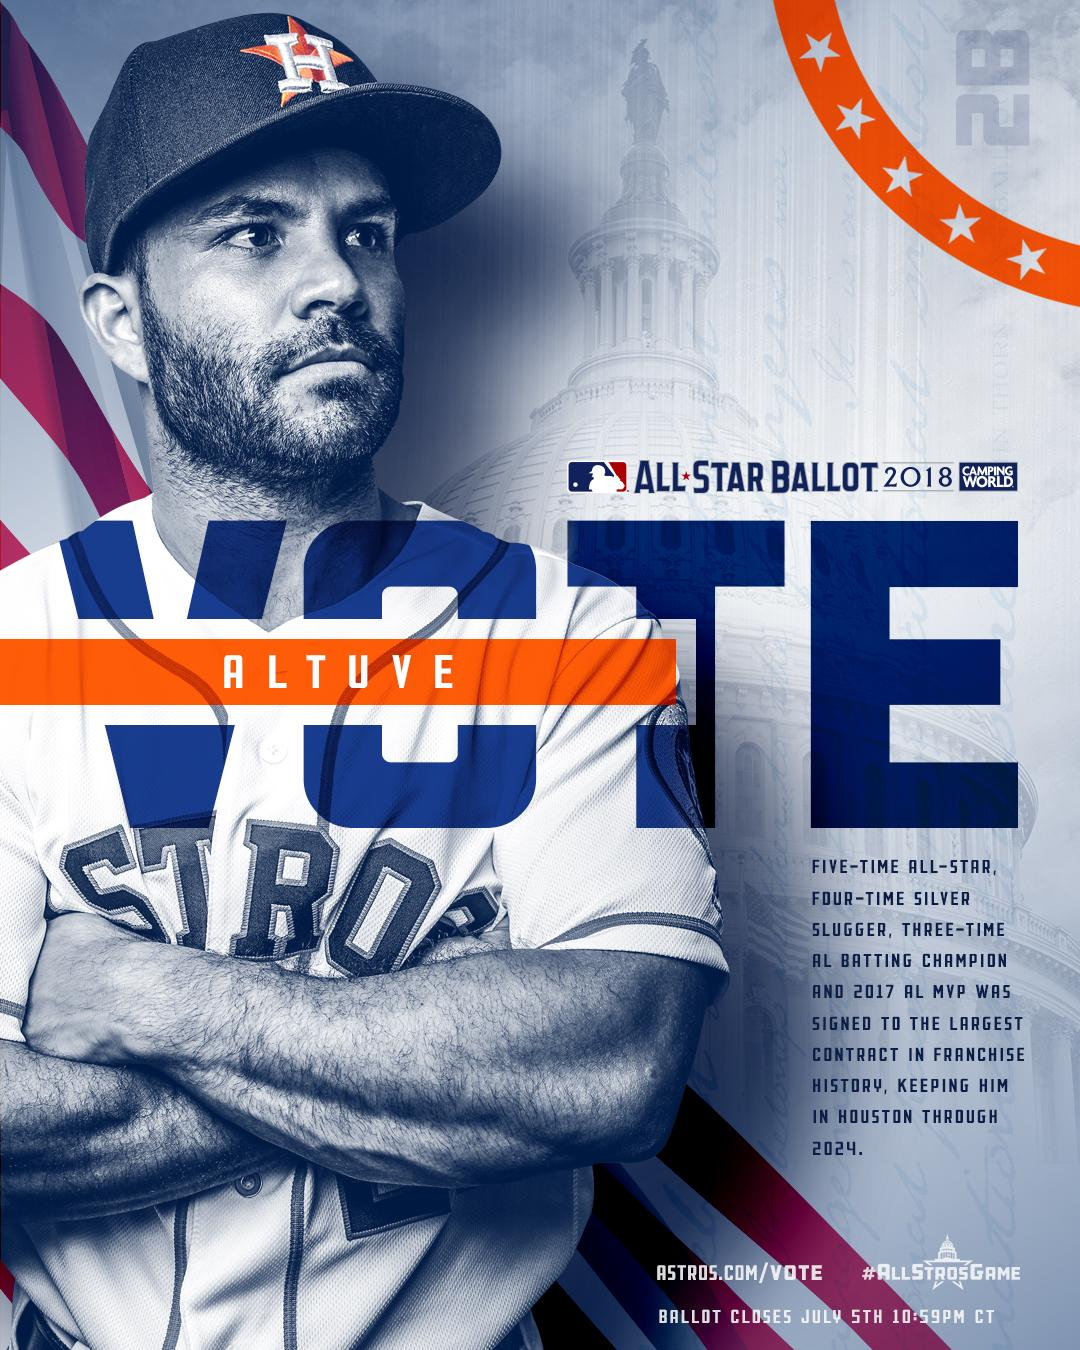 The Hit King. The Road Warrior. The MVP.   #VoteAltuve and make 2018 an #AllStrosGame! https://t.co/C9XSBgkLJz https://t.co/PxmJEzUcHa